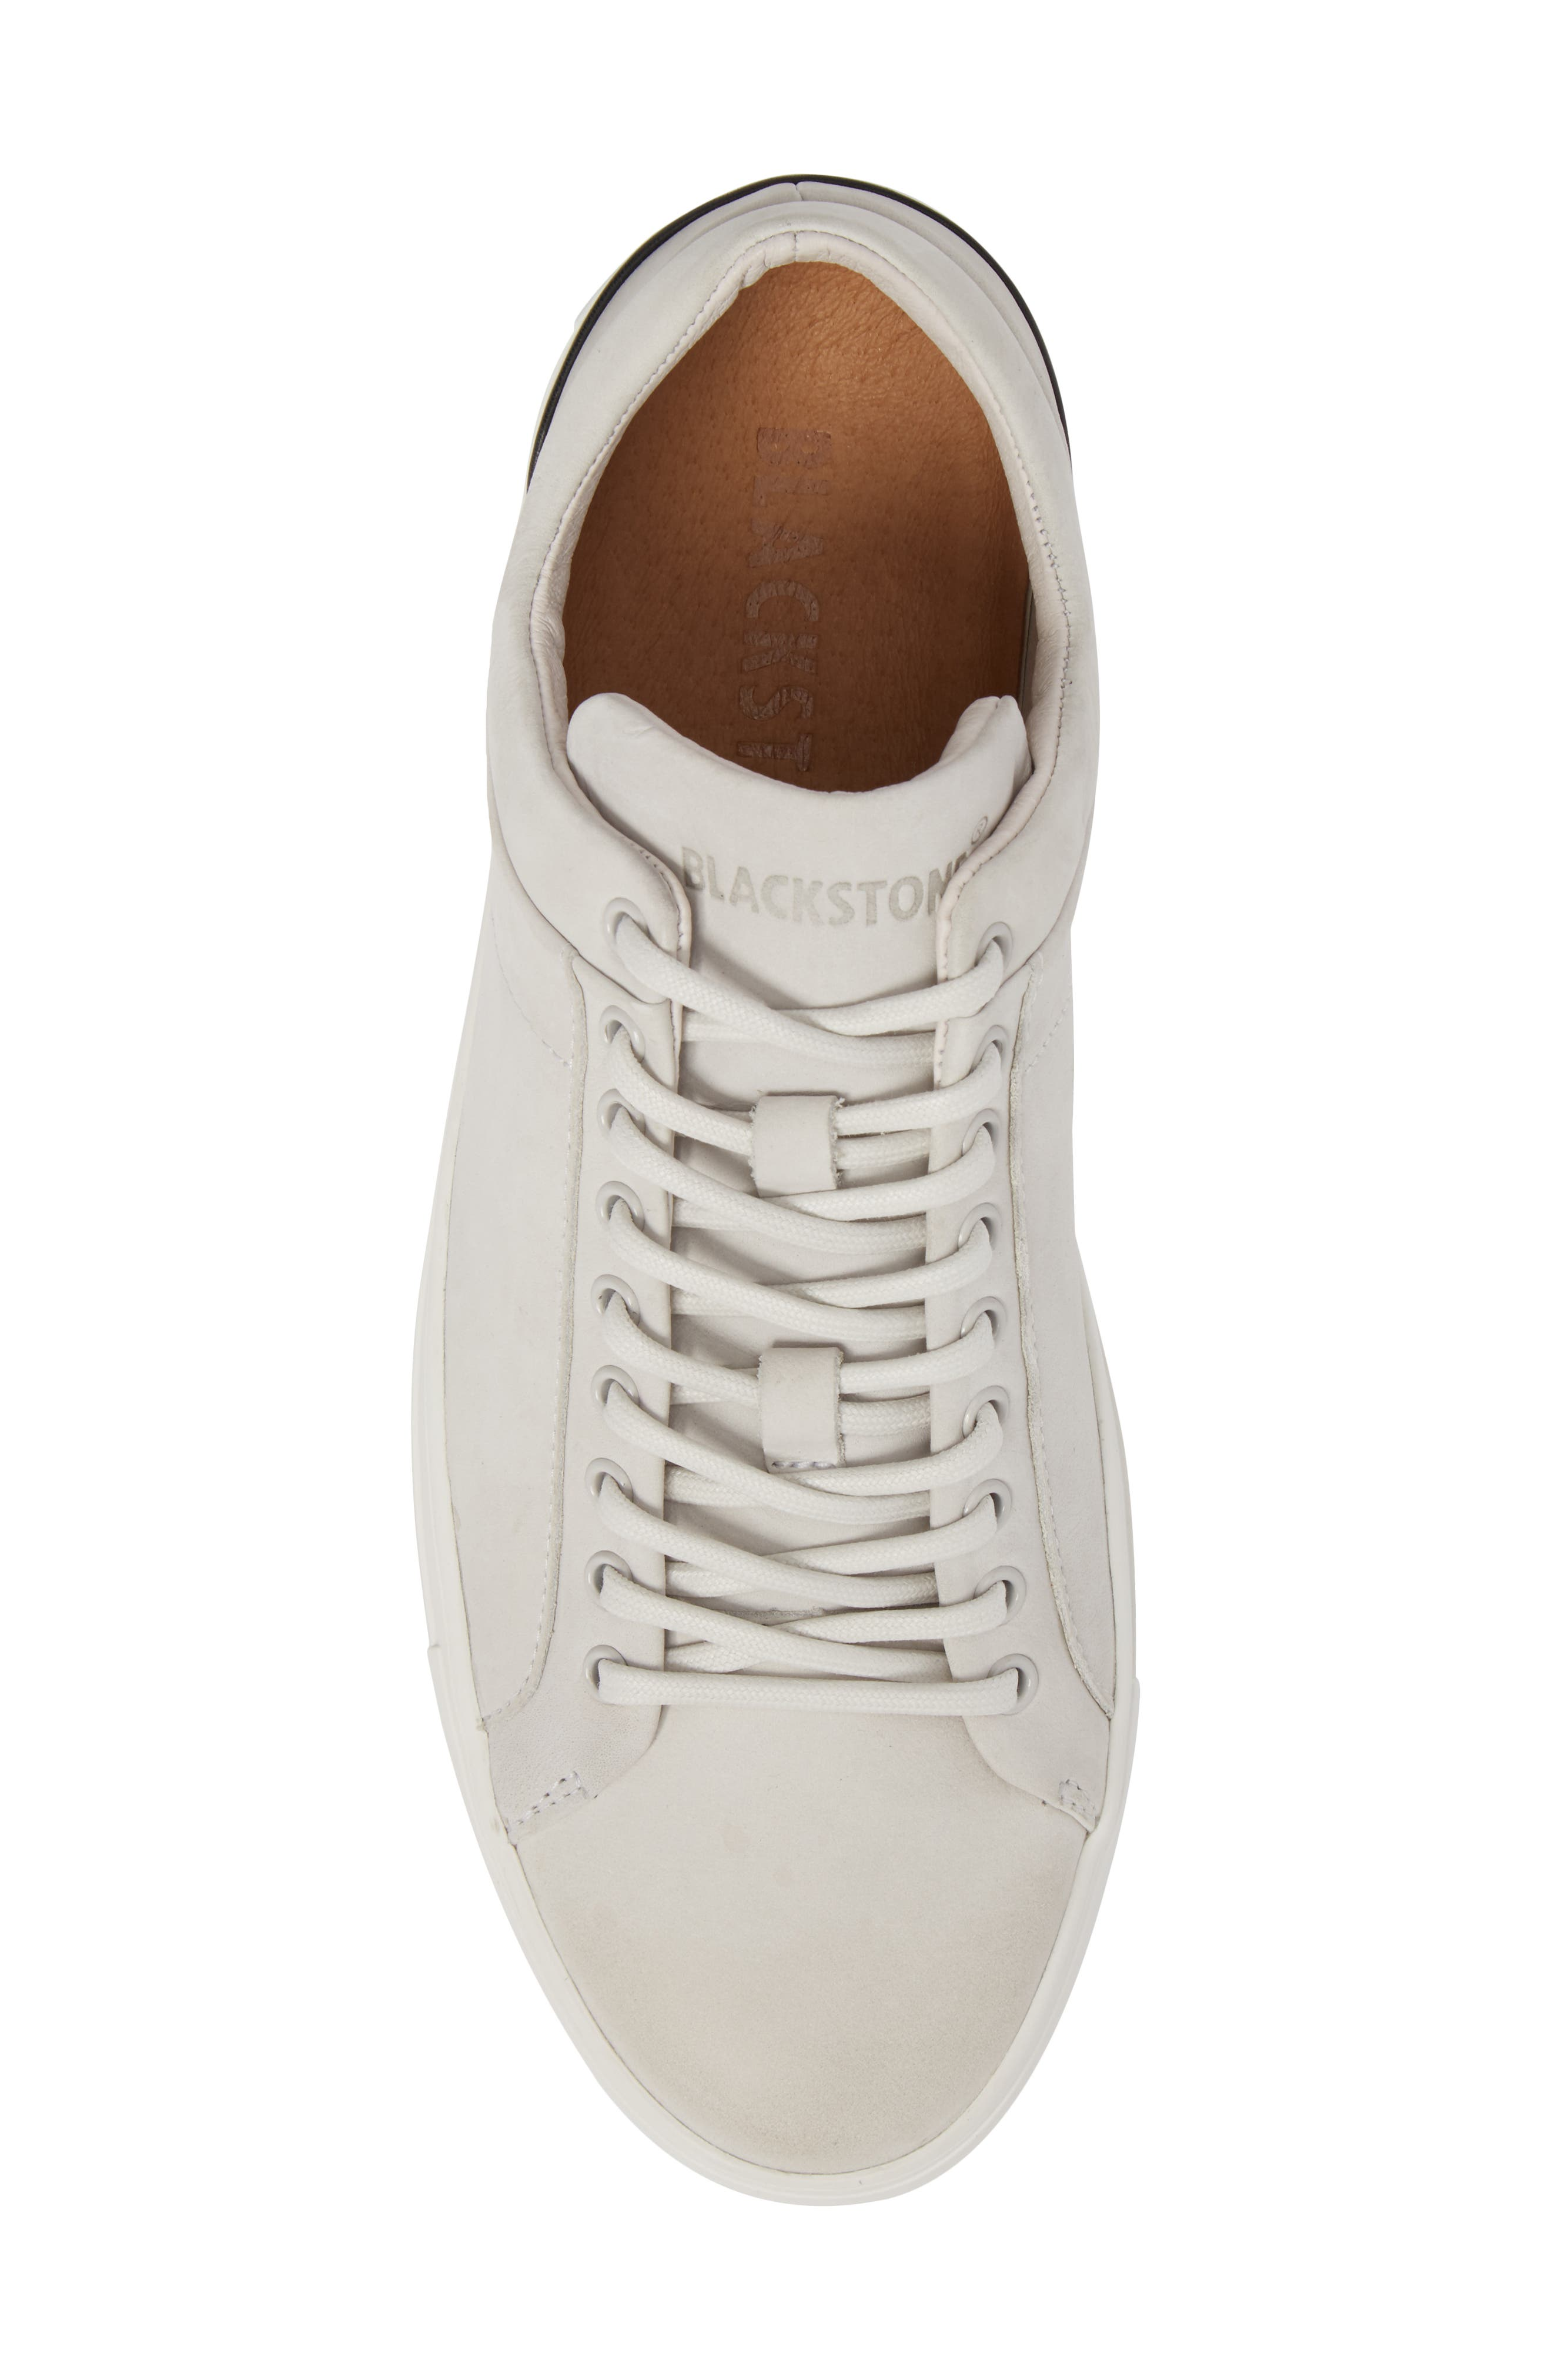 PM56 Low Top Sneaker,                             Alternate thumbnail 5, color,                             Wind Chime Leather